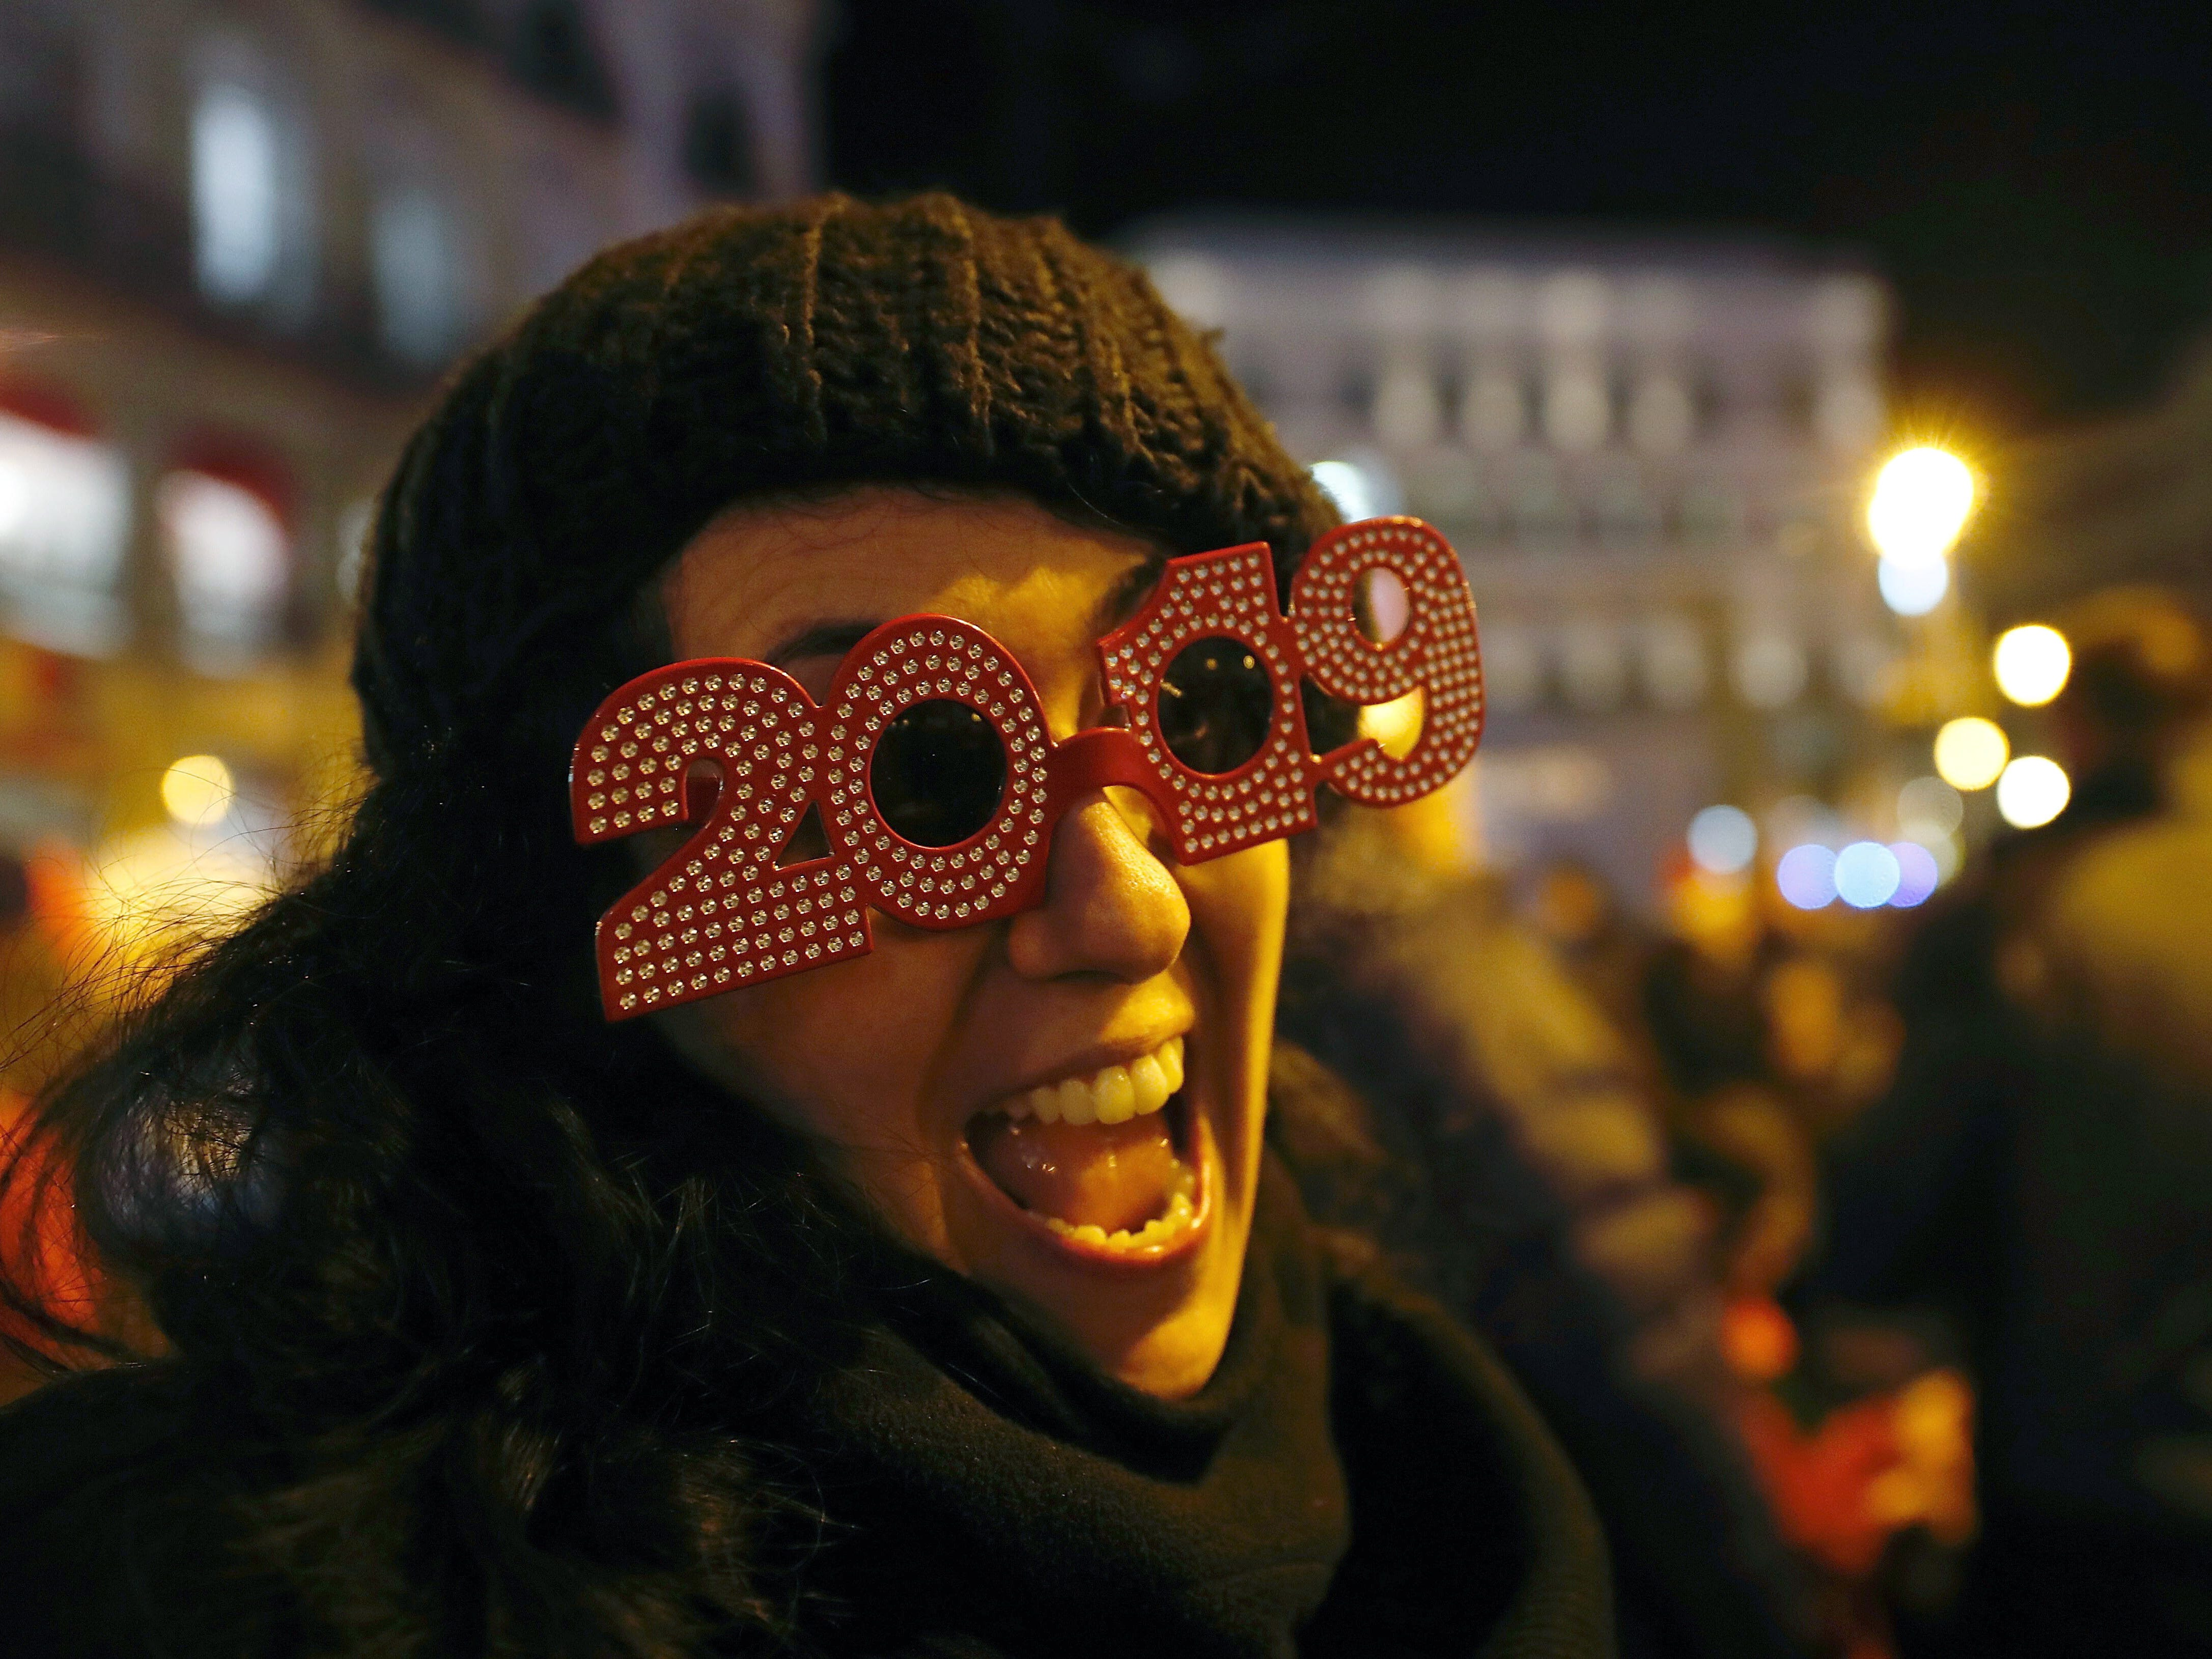 People gather at Puerto del Sol to celebrate in advance the New Year's Eve while as a clock has its final inspection twenty-four hours before the bells ring twelve times to commemorate the new year in Madrid, Spain.